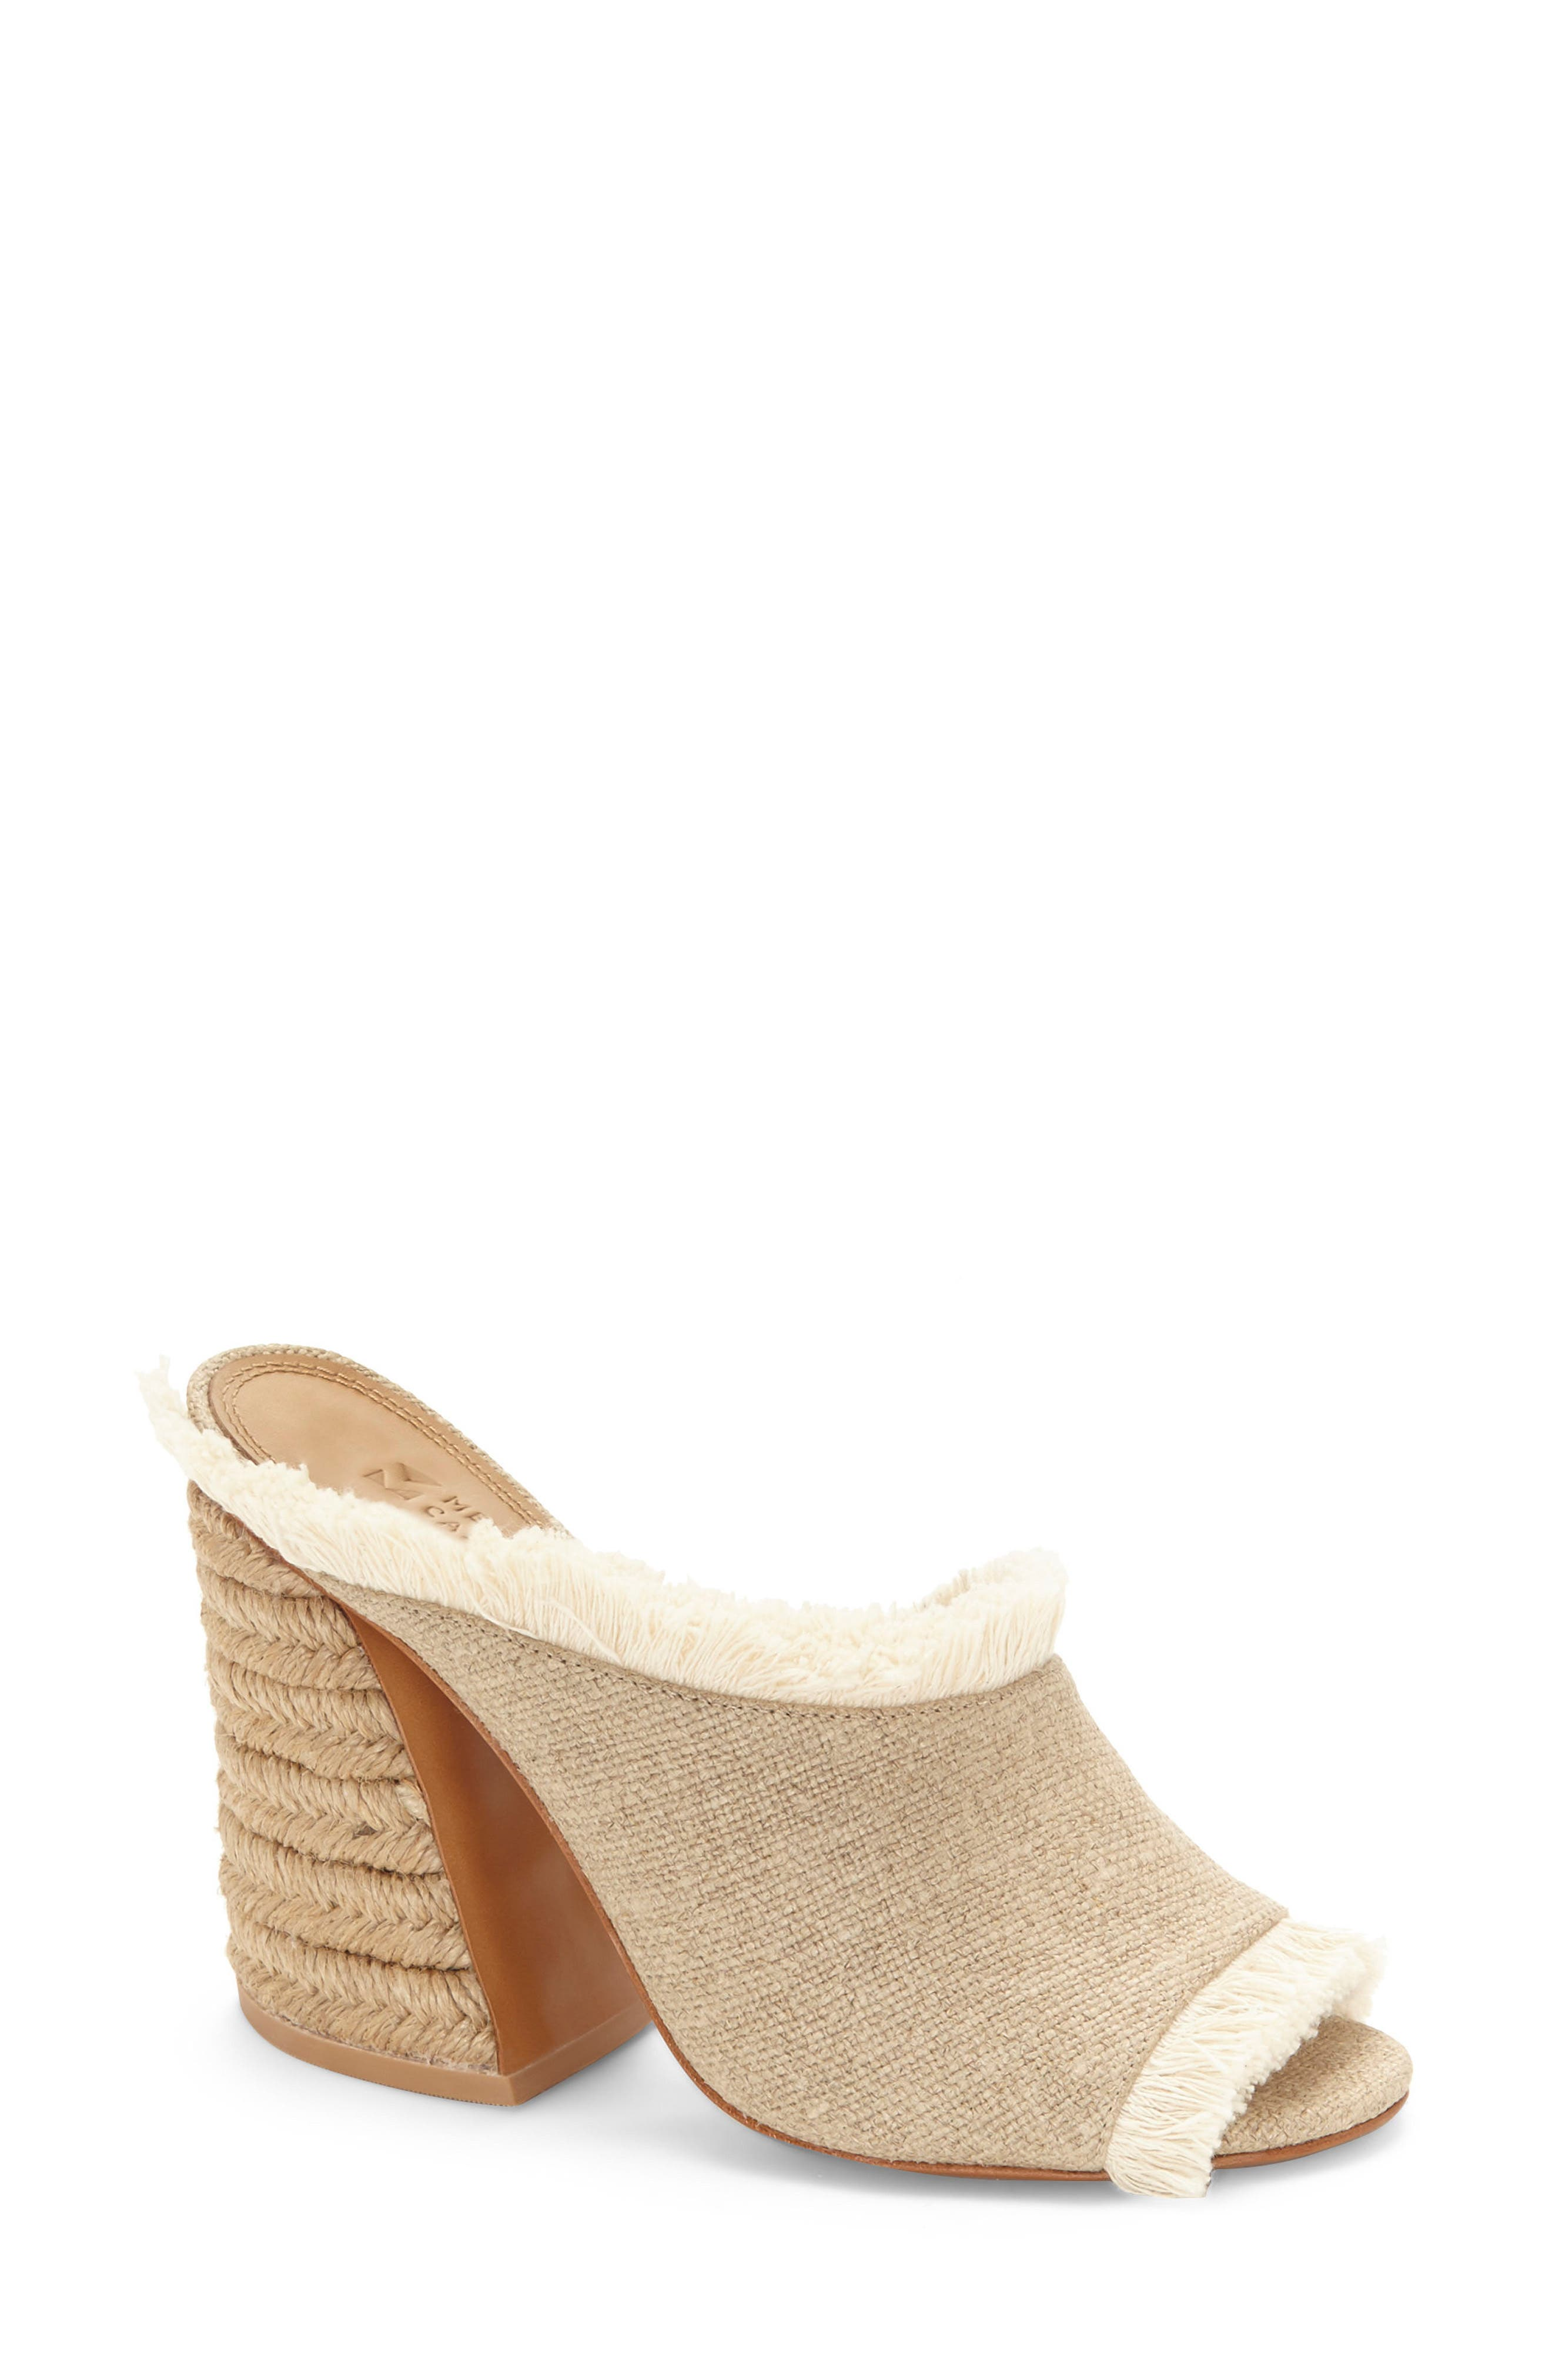 Izar Fringe Asymmetrical Sandal,                         Main,                         color, Natural